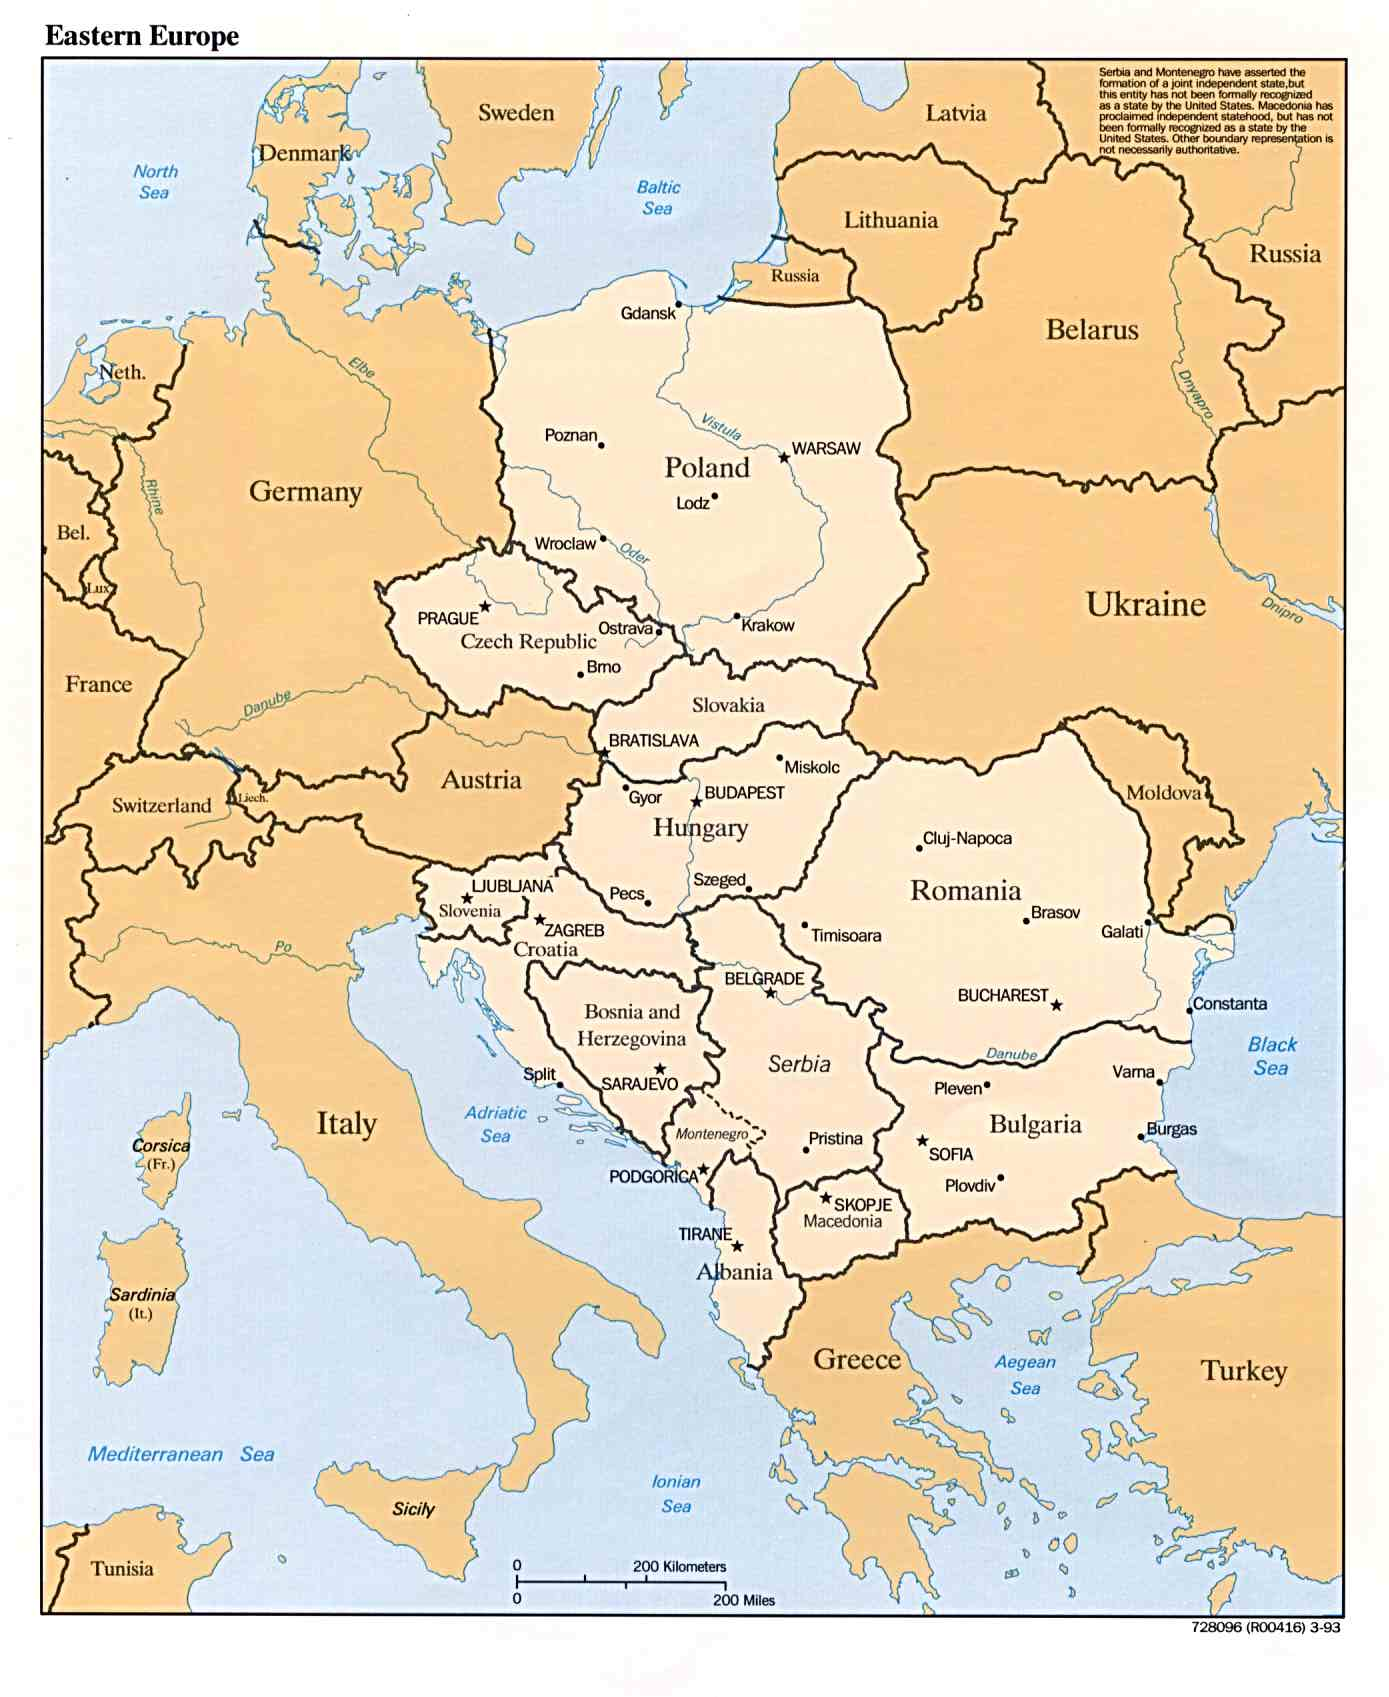 Eastern european map see map details from anamericaninbelarus blogspot